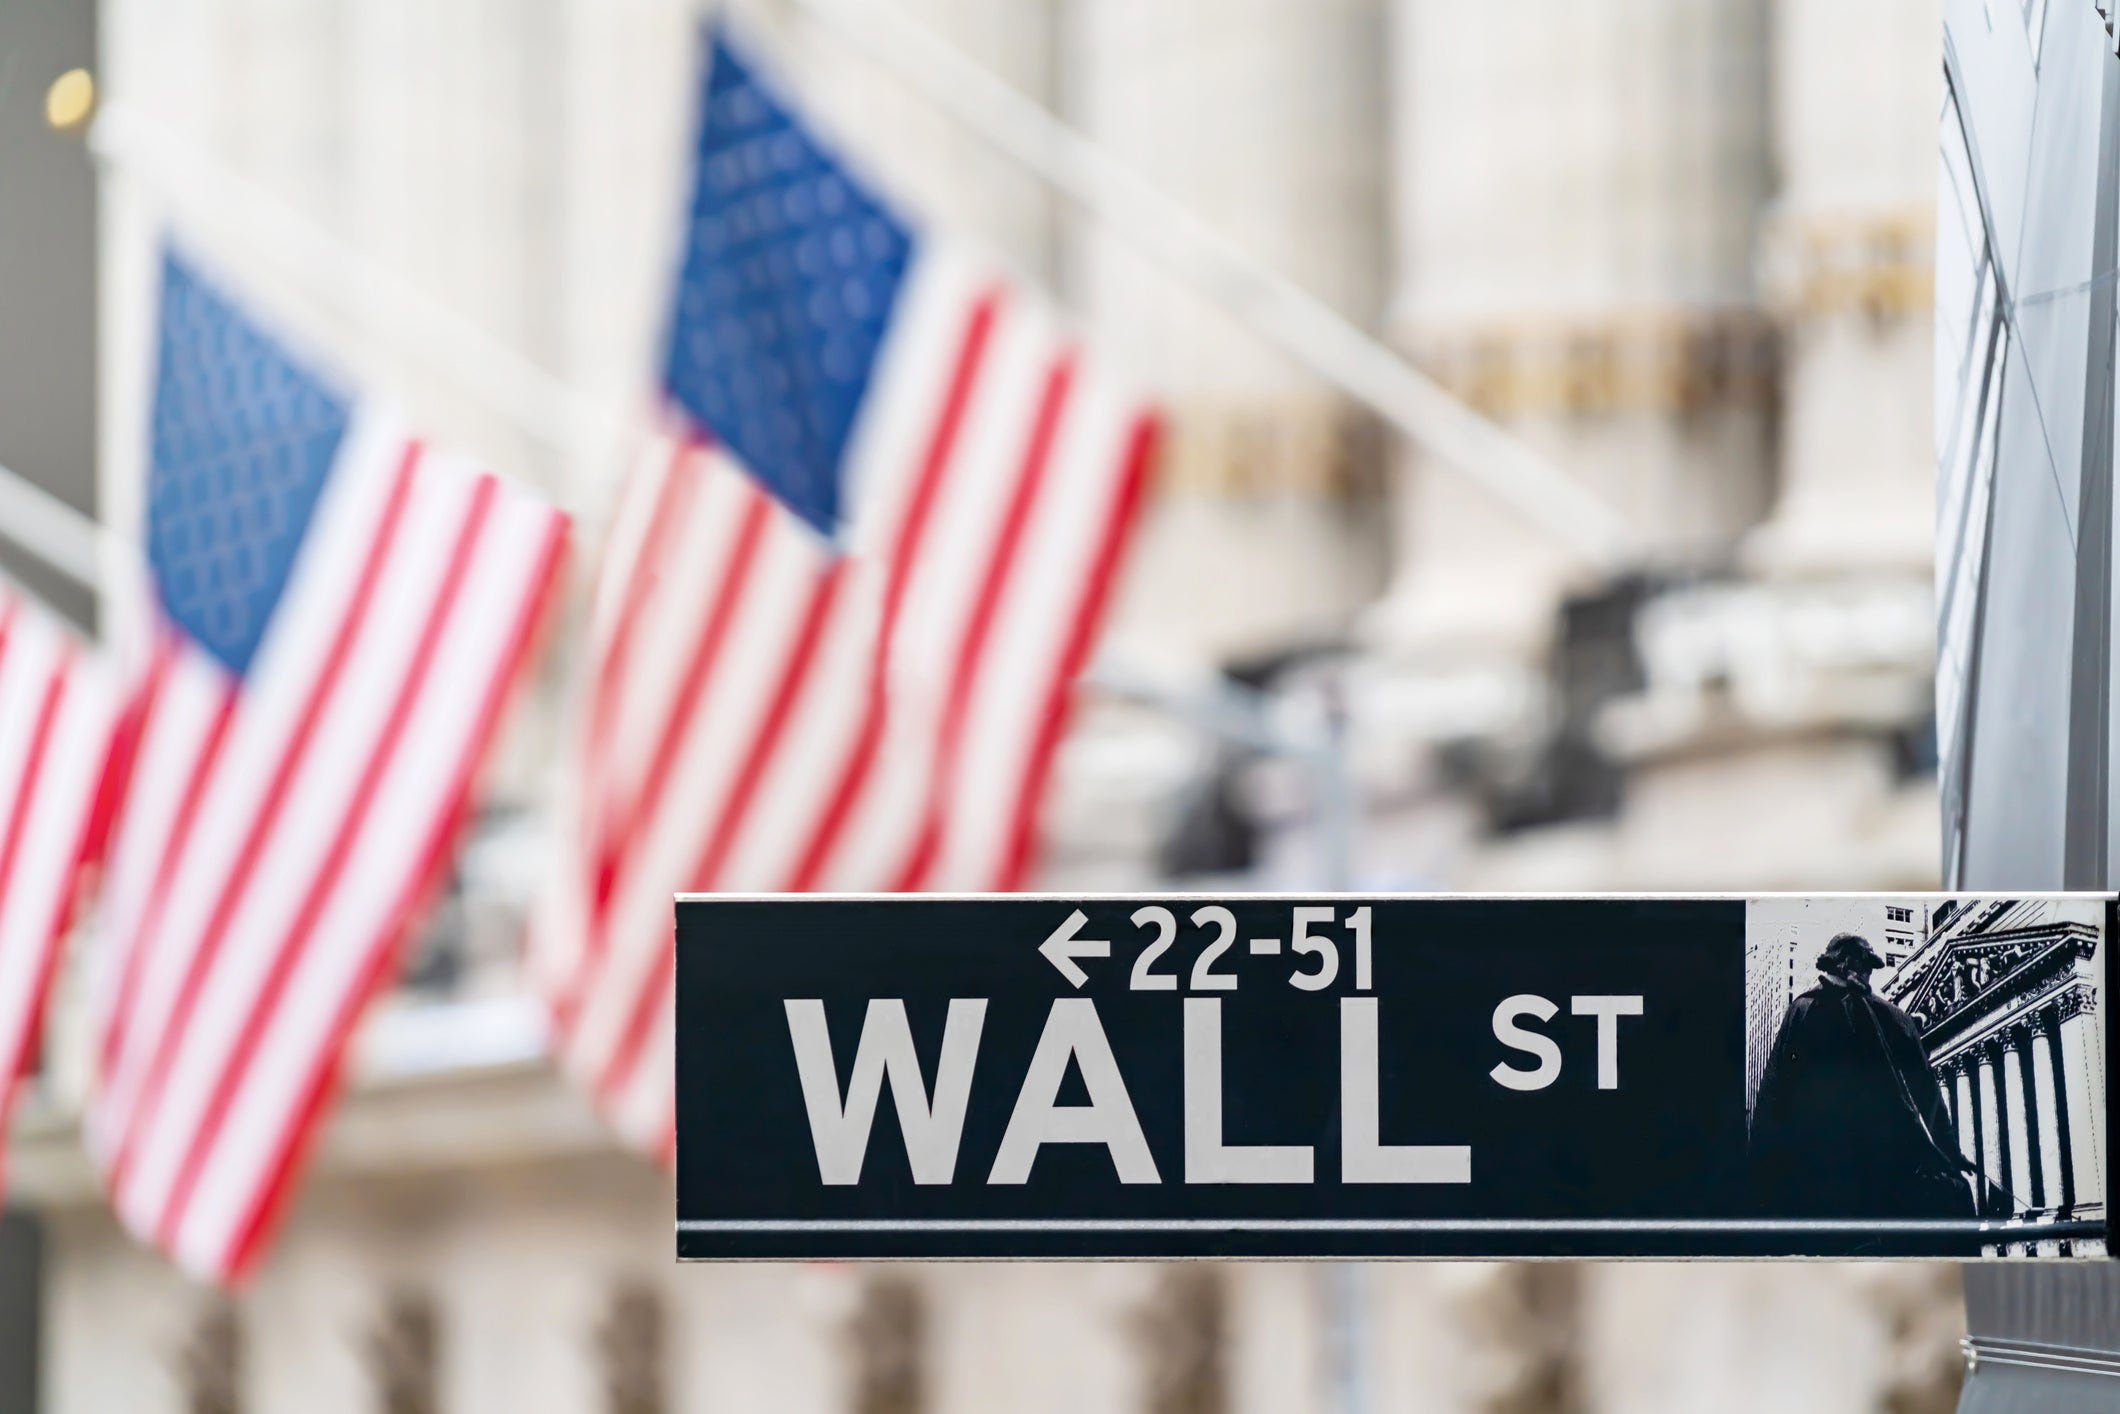 Stocks end mixed on Wall Street, S&P 500 manages weekly gain